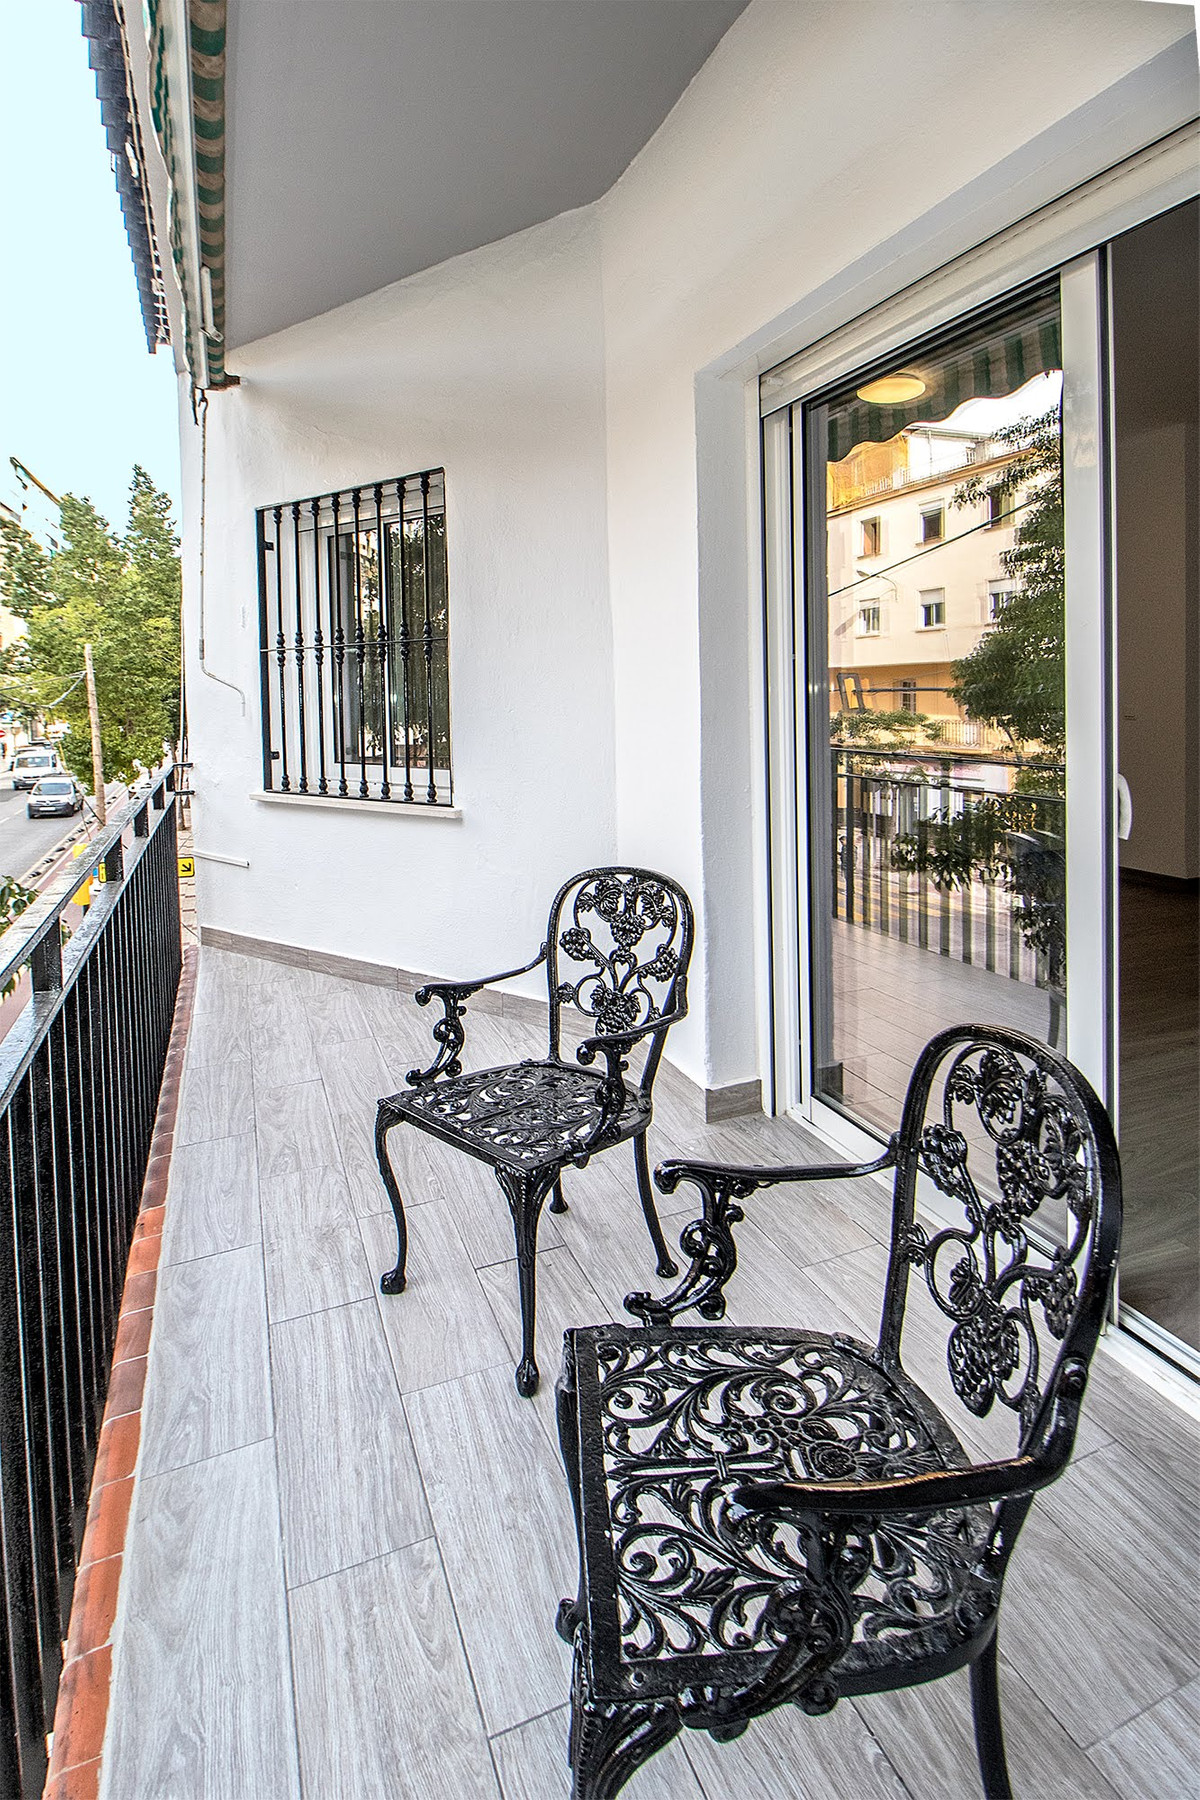 Welcome to the fully reformed 3 bed/ 2 bath apartment merely 10 minutes walk from the Malaga Histori,Spain